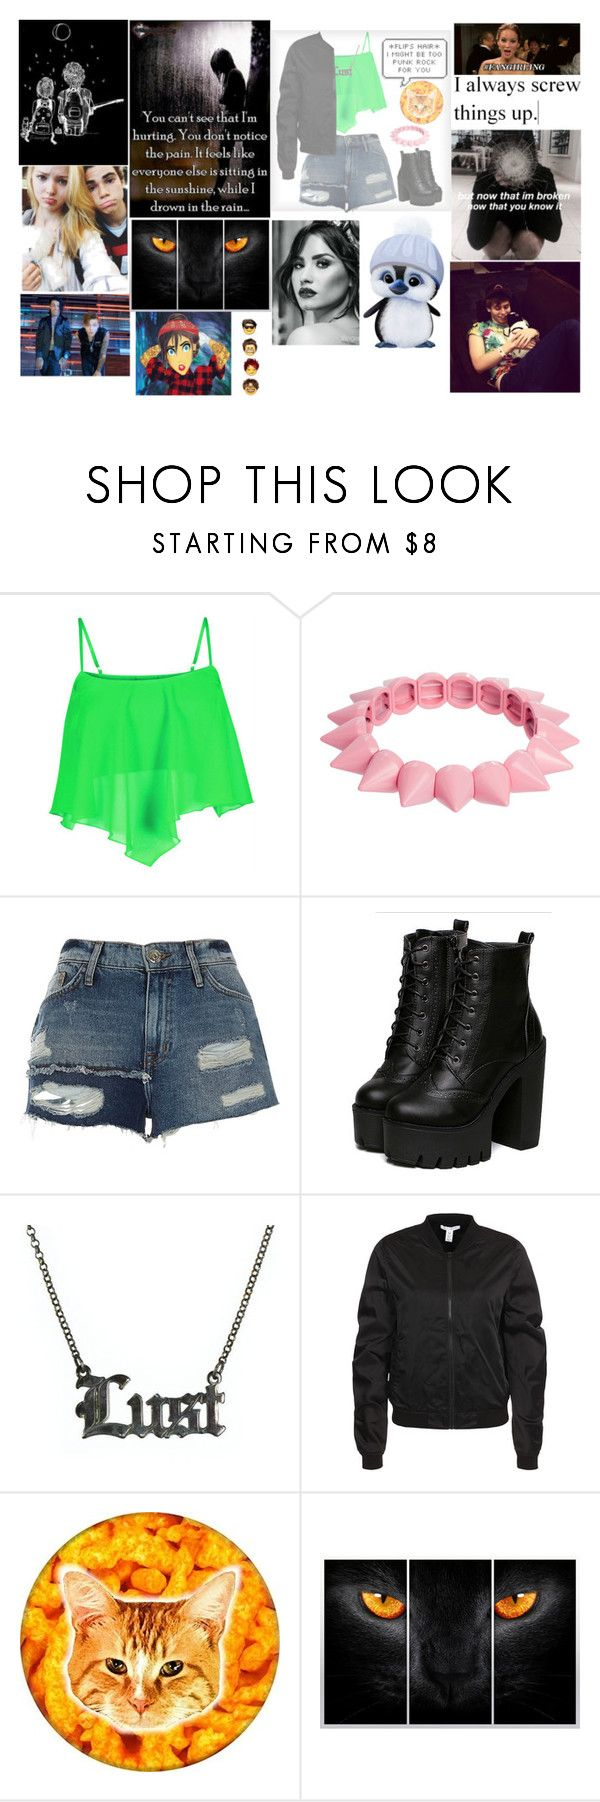 """""""fangirling"""" by anjalenabvb ❤ liked on Polyvore featuring ASOS, River Island, Hoolala, NLY Trend, Disney and fangirling"""